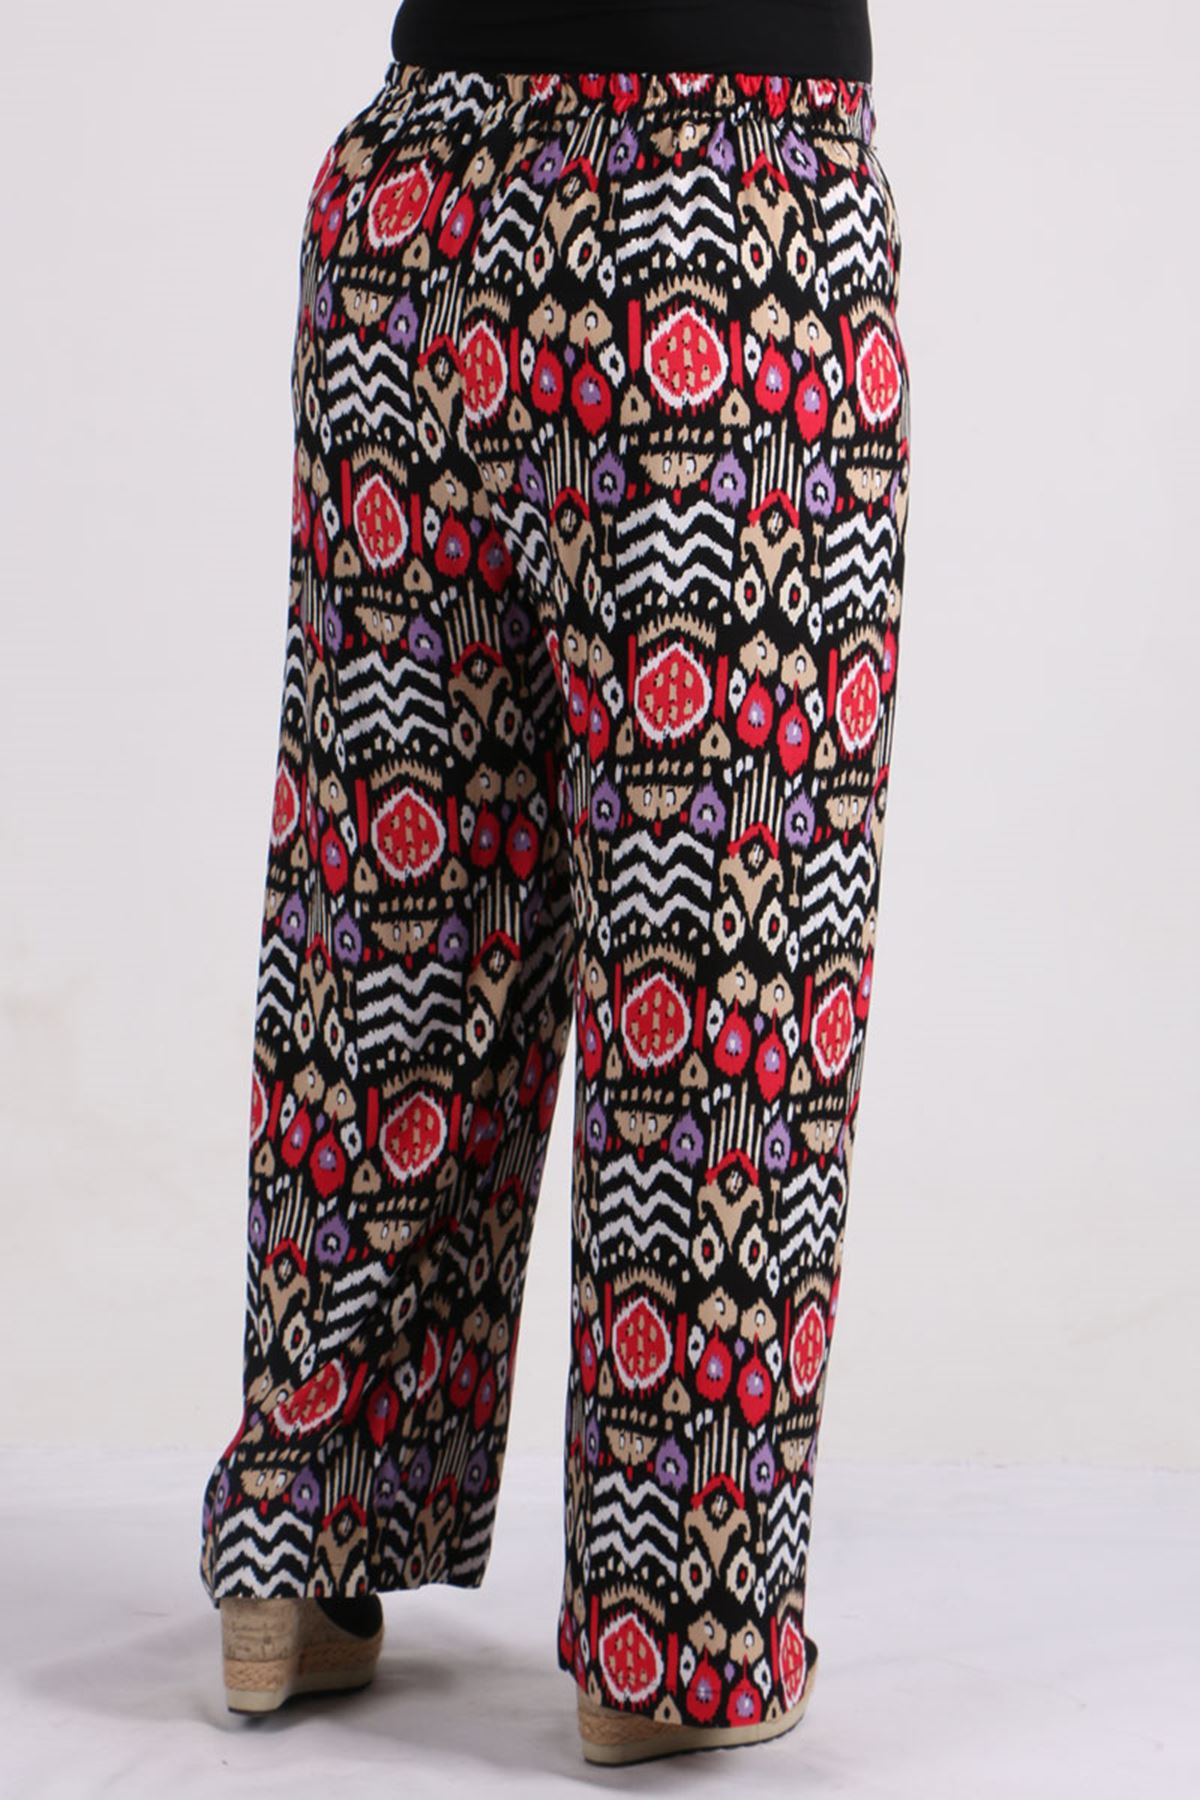 9156 Plus Size Pants - Red Patterned